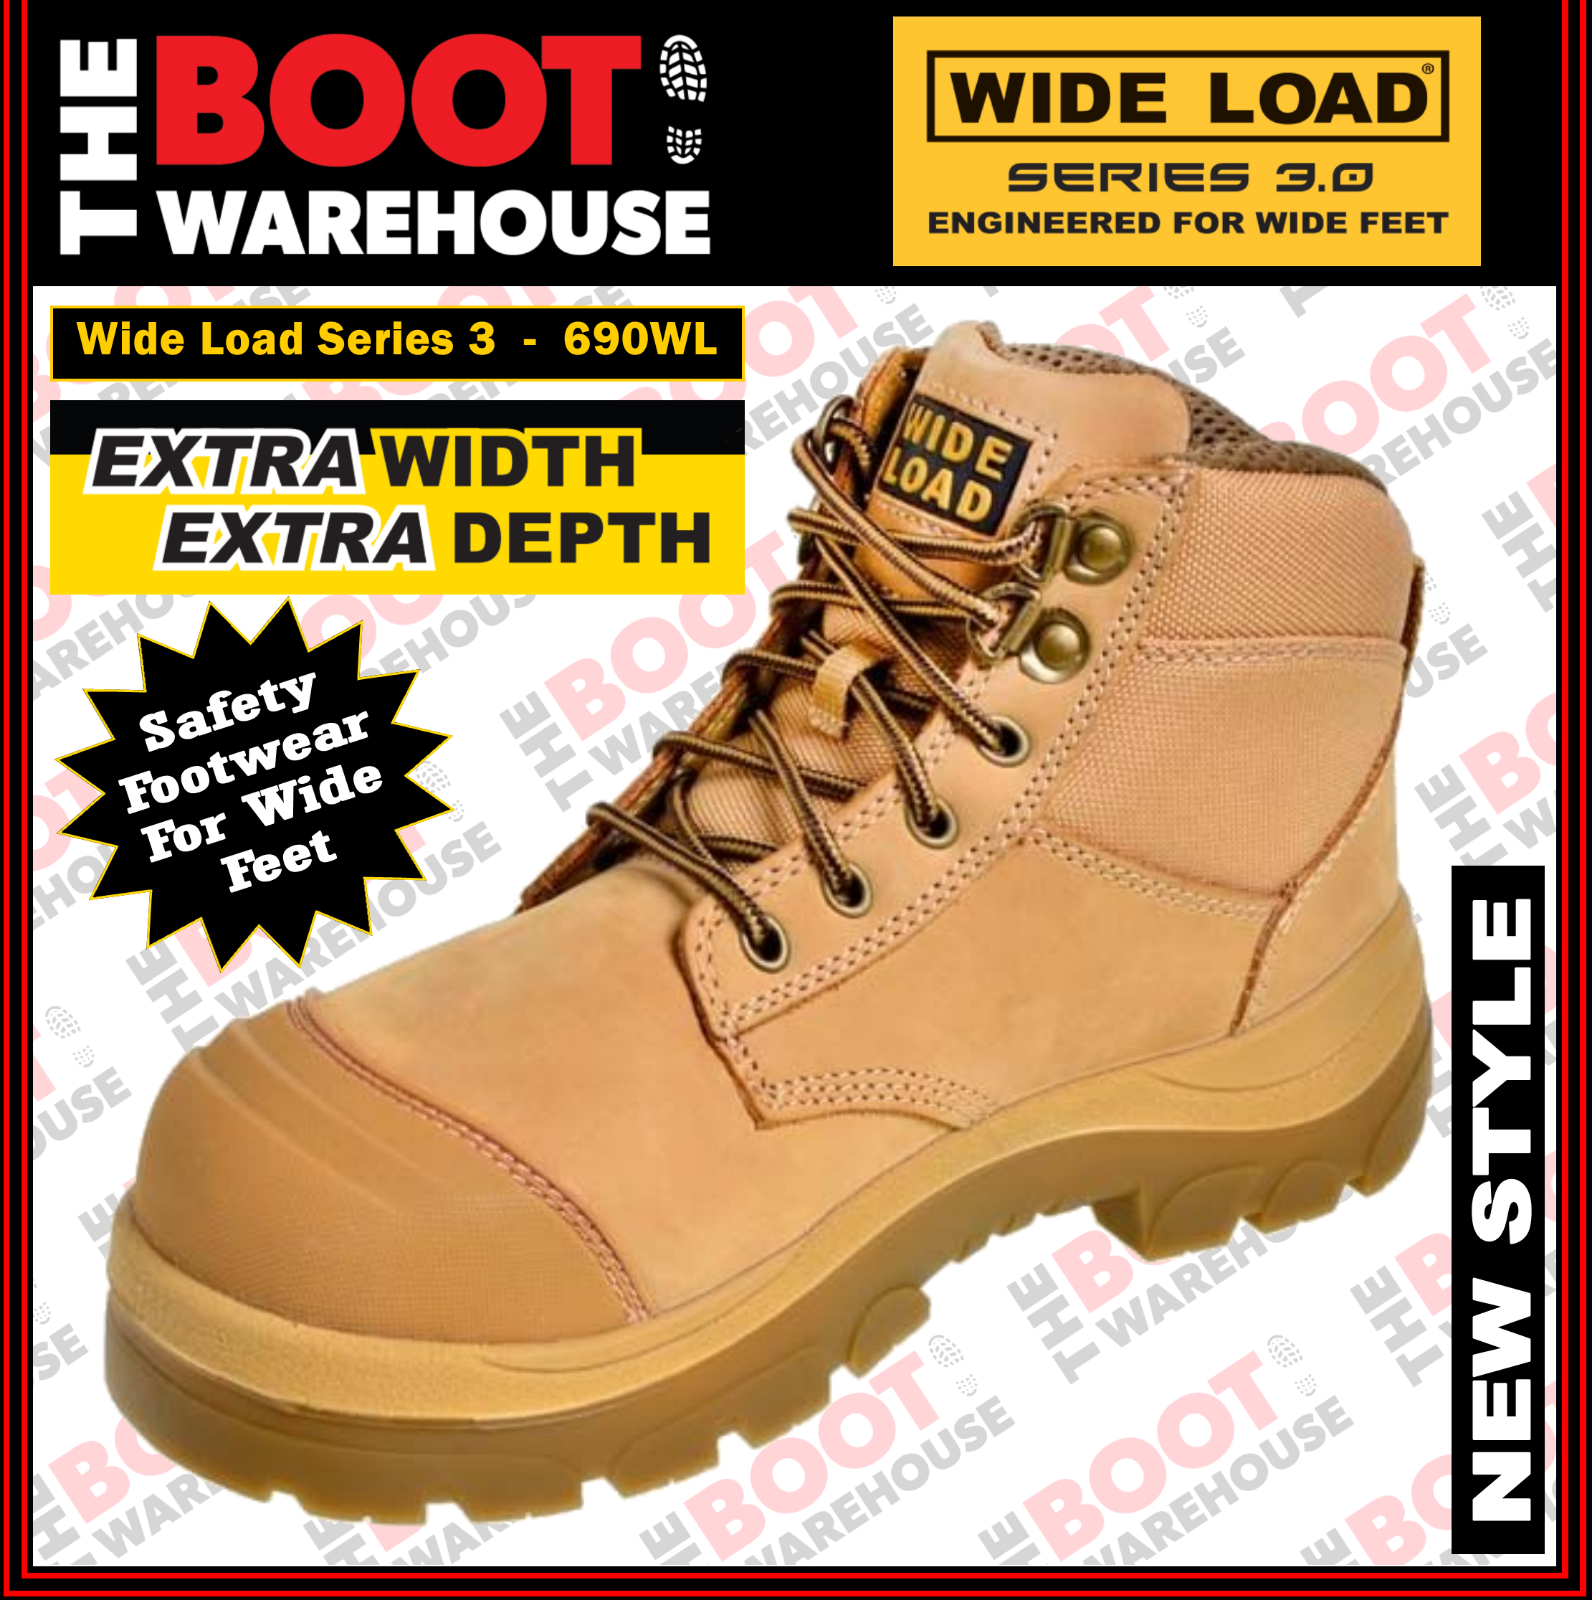 Wide Load Safety Work Stiefel 'S3' 690WL  Extra Wide, Steel Cap, Nubuck, Lace-Up